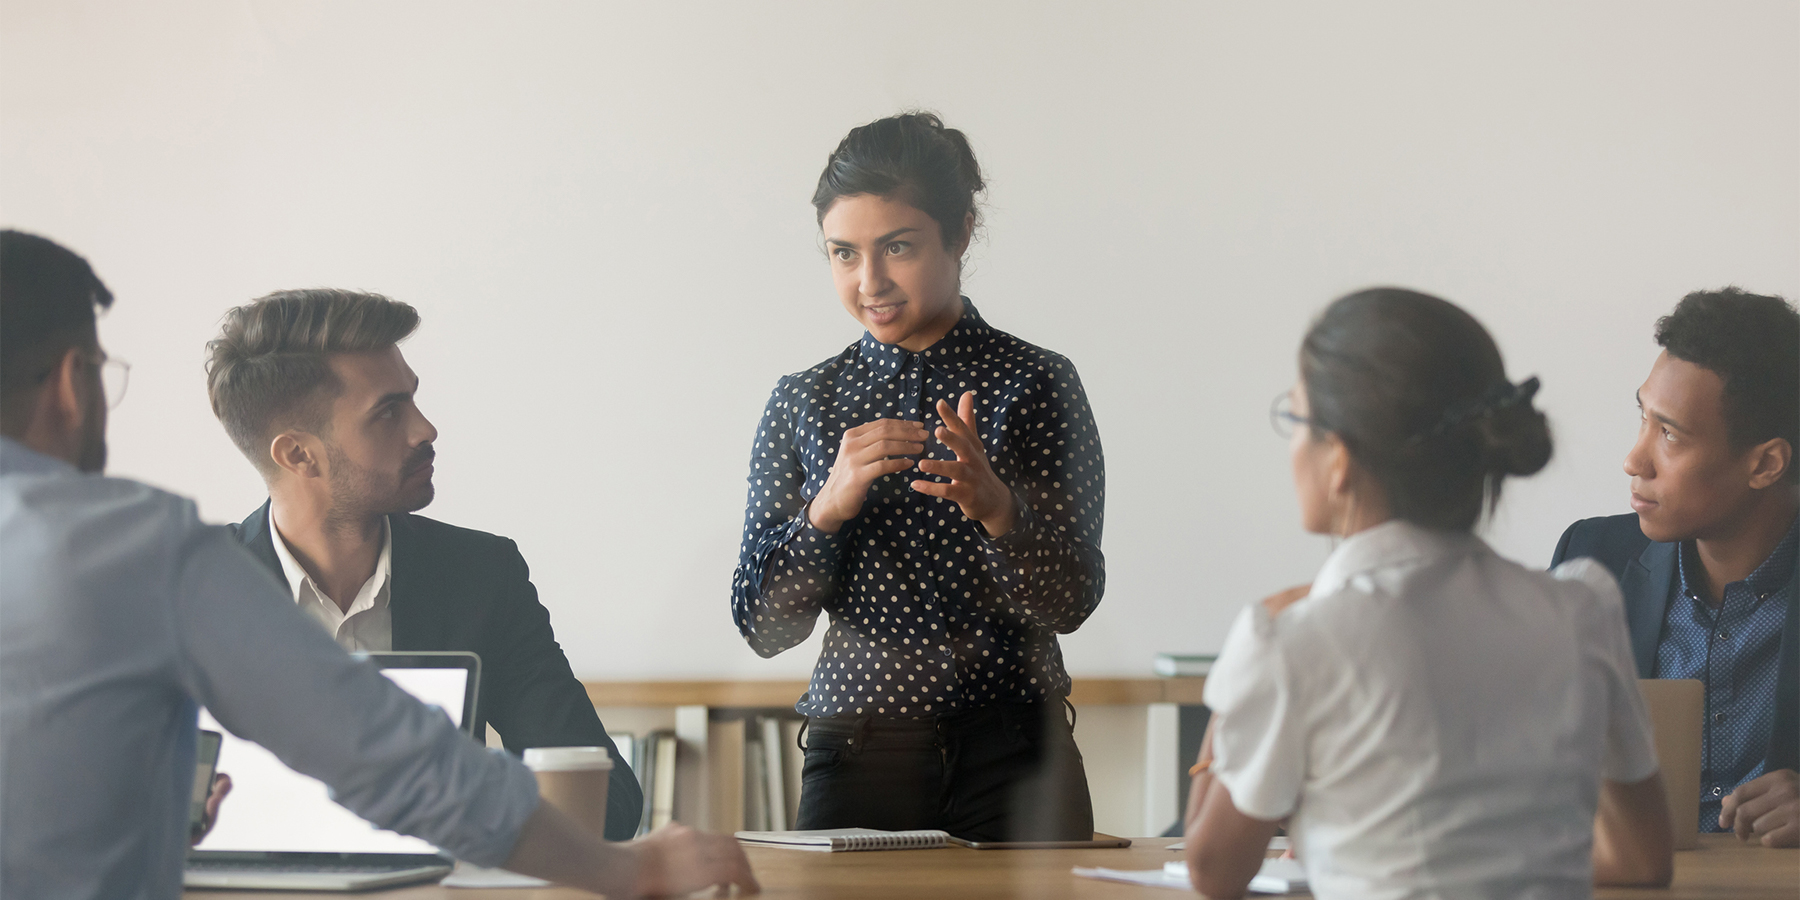 Research Indicates Gender Disparity in Academic Achievement and Leadership Positions